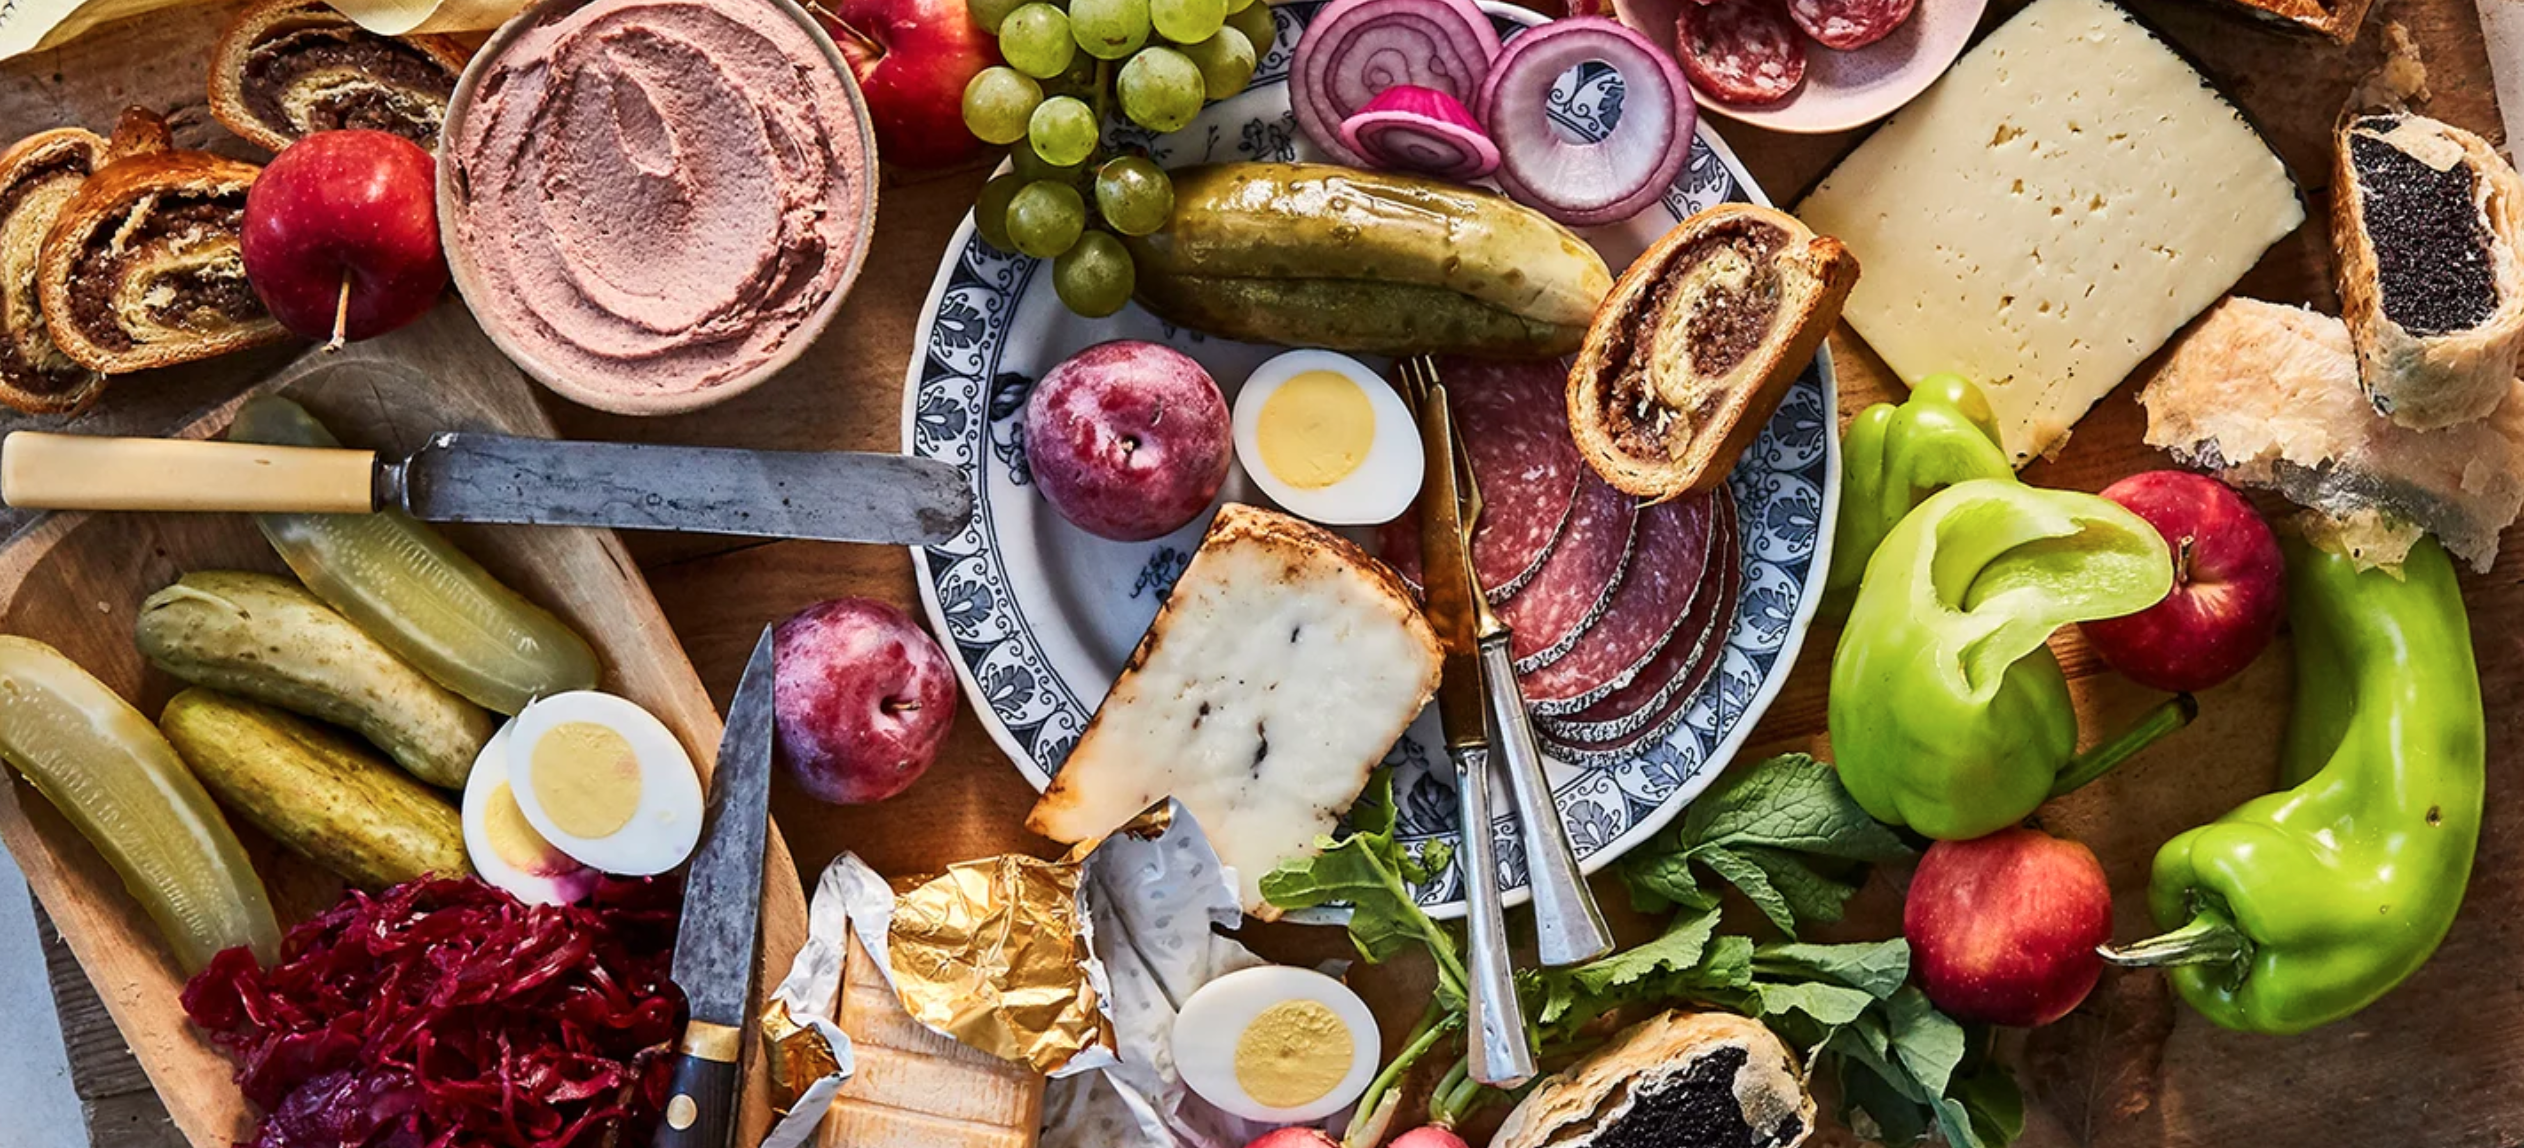 large platter of fruits, veggies, meats, pastry, cheese, dip and more